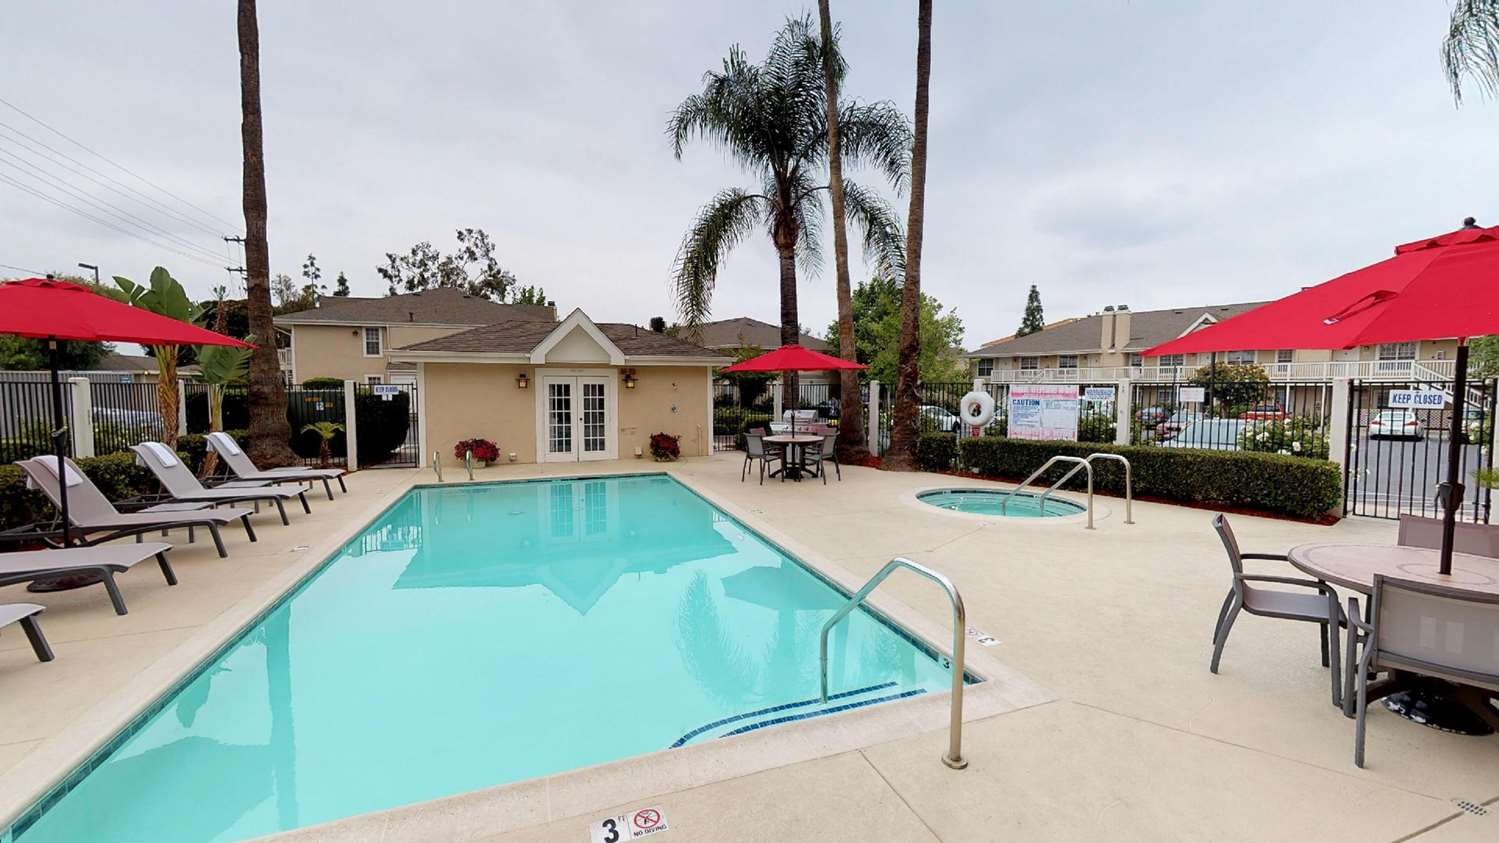 Pool - Chase Suite Hotel Brea